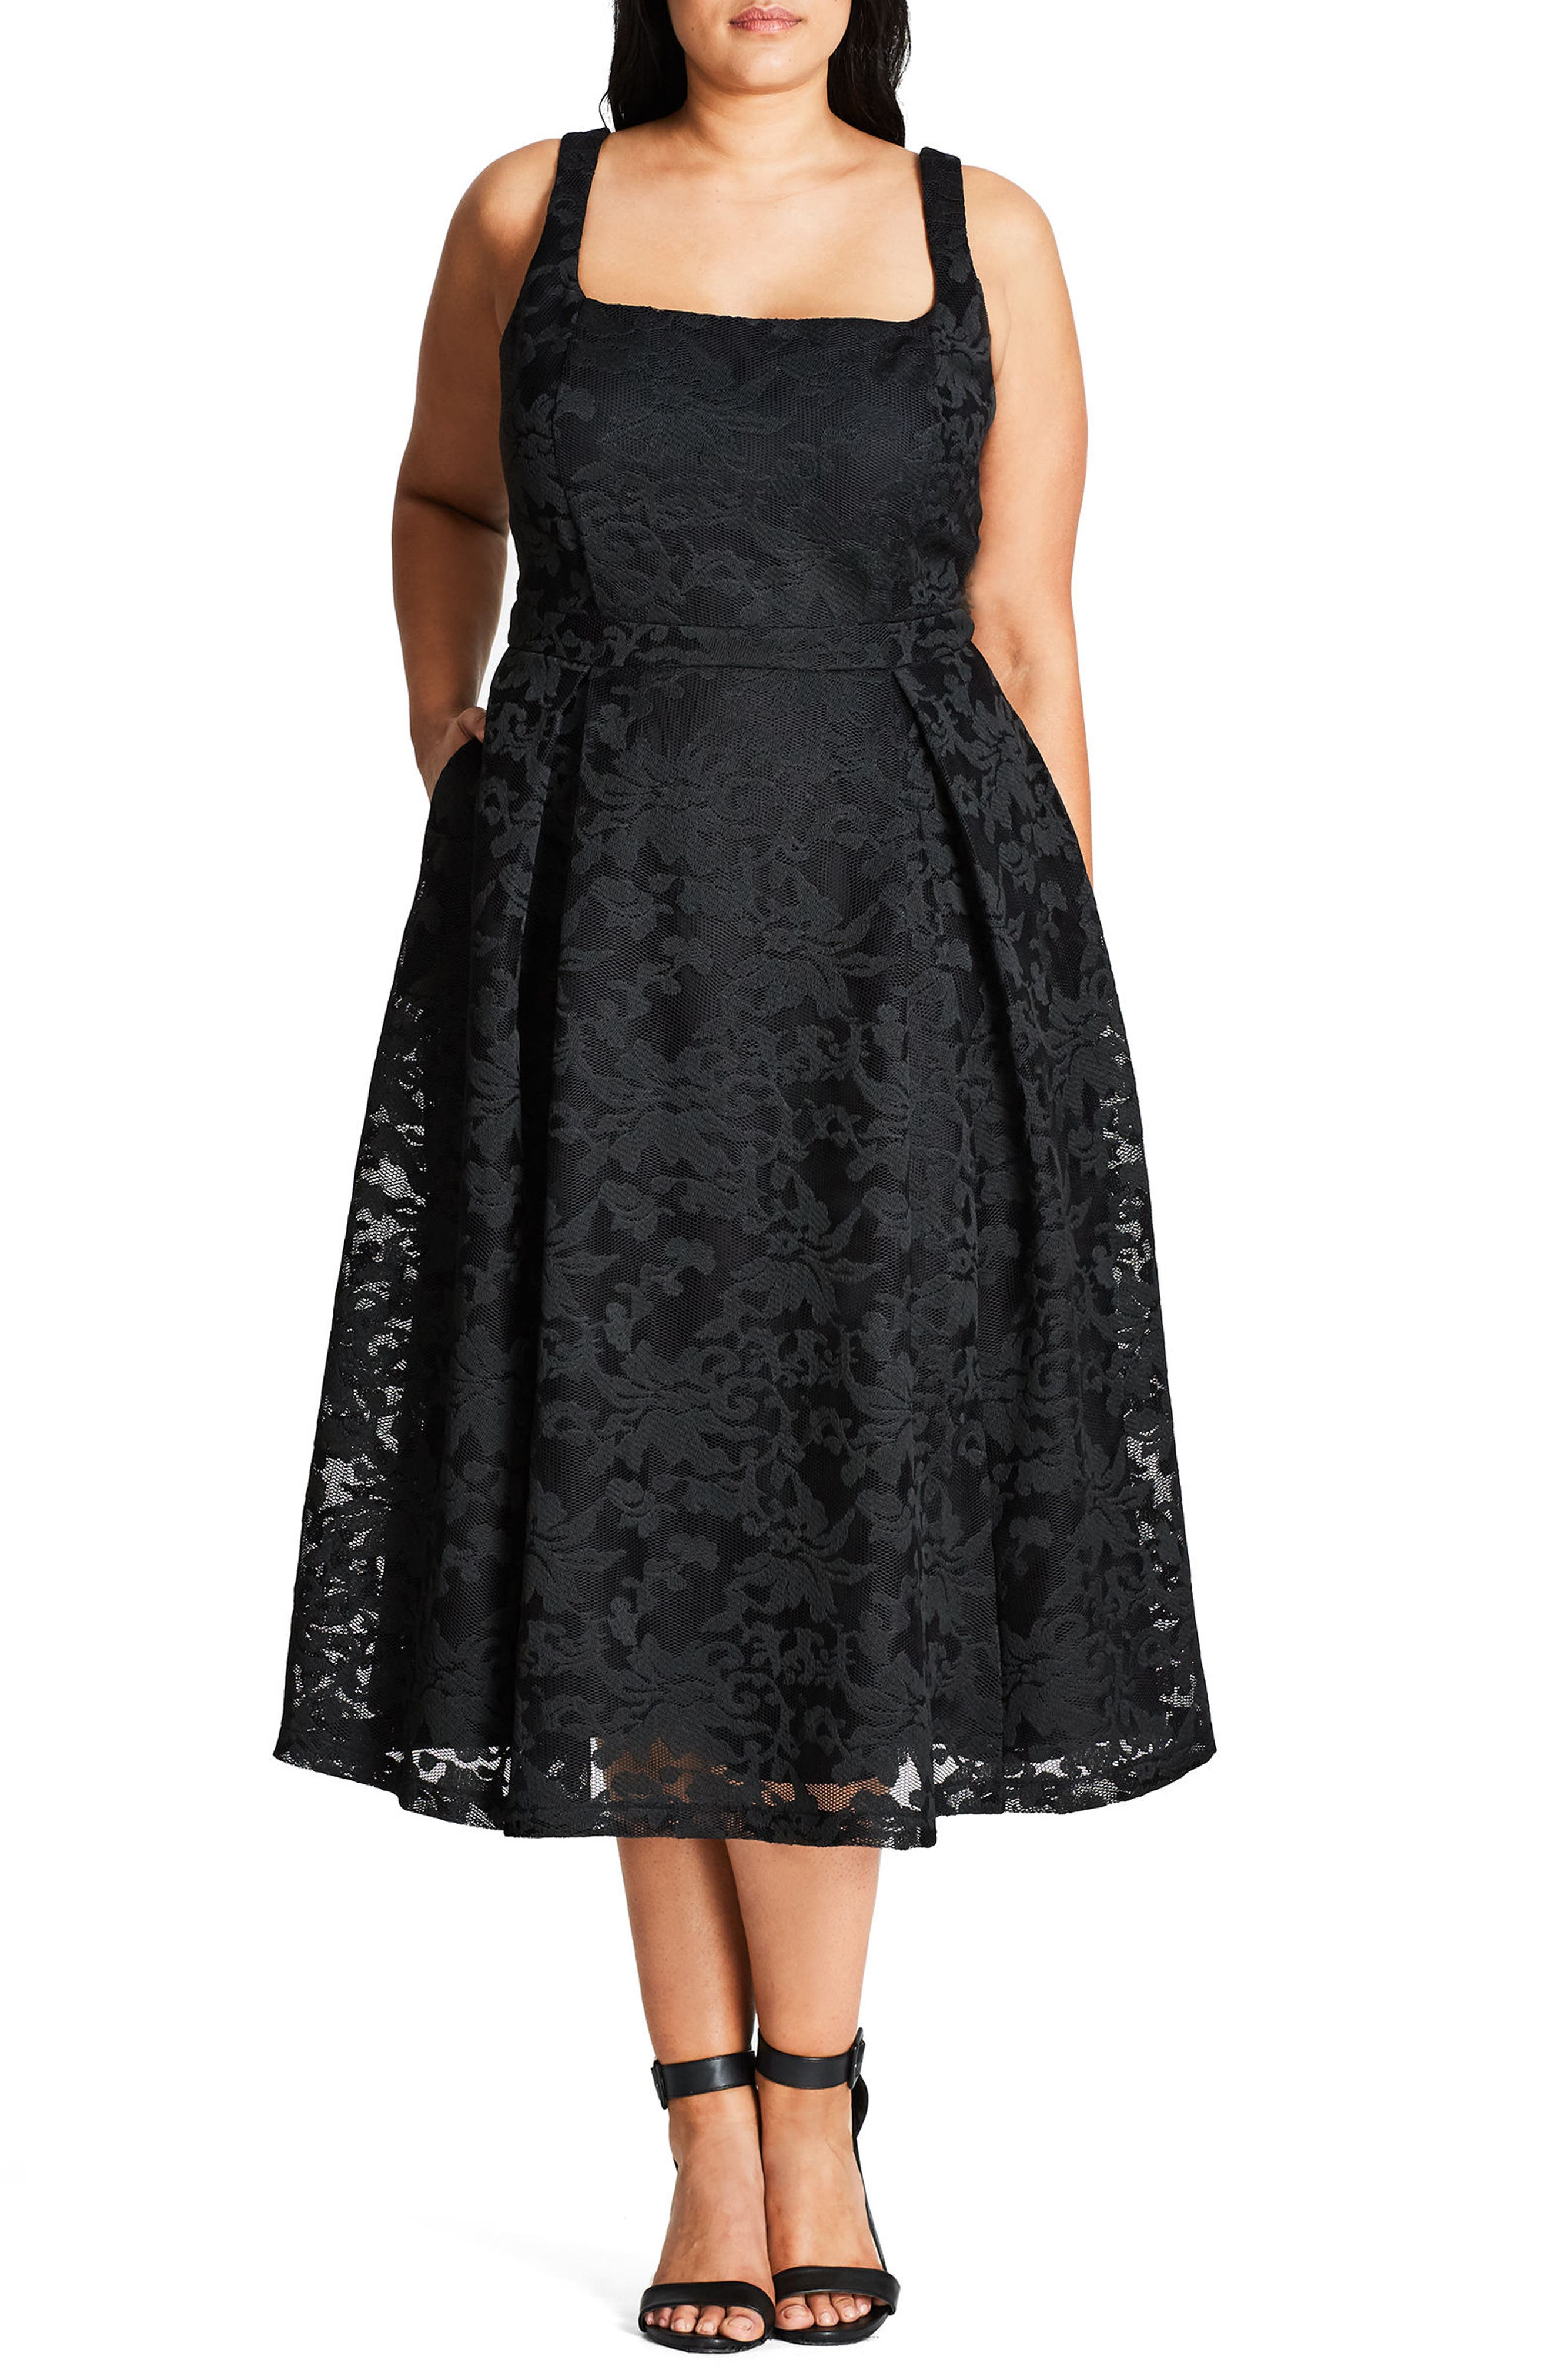 1950s Plus Size Dresses, Swing Dresses Plus Size Womens City Chic Jackie O Lace Fit  Flare Dress Size X-Small - Black $64.50 AT vintagedancer.com